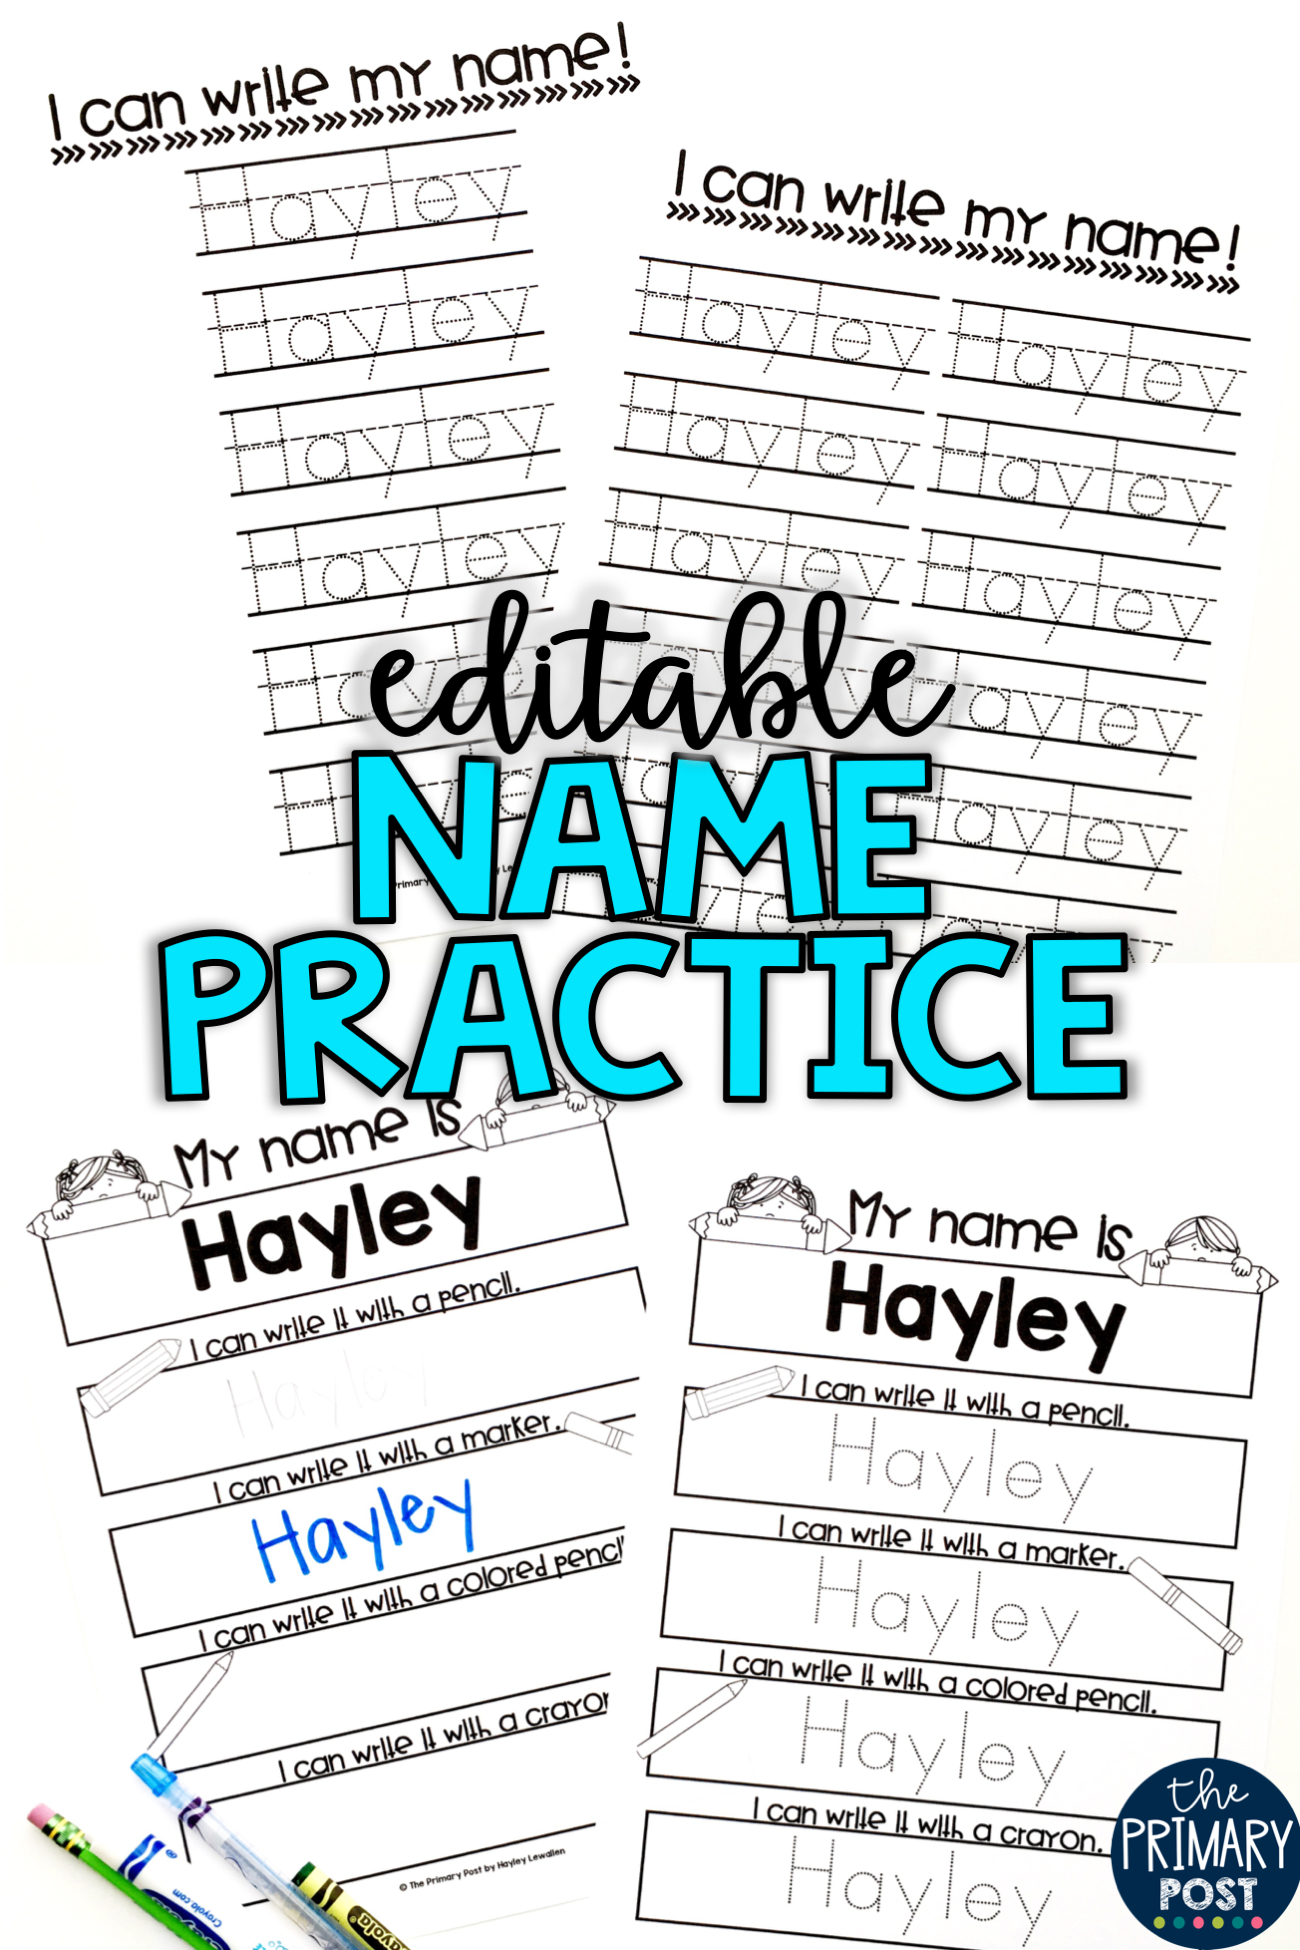 Editable Name Practice Sheets | Name Practice, Practice regarding Name Tracing Practice Editable